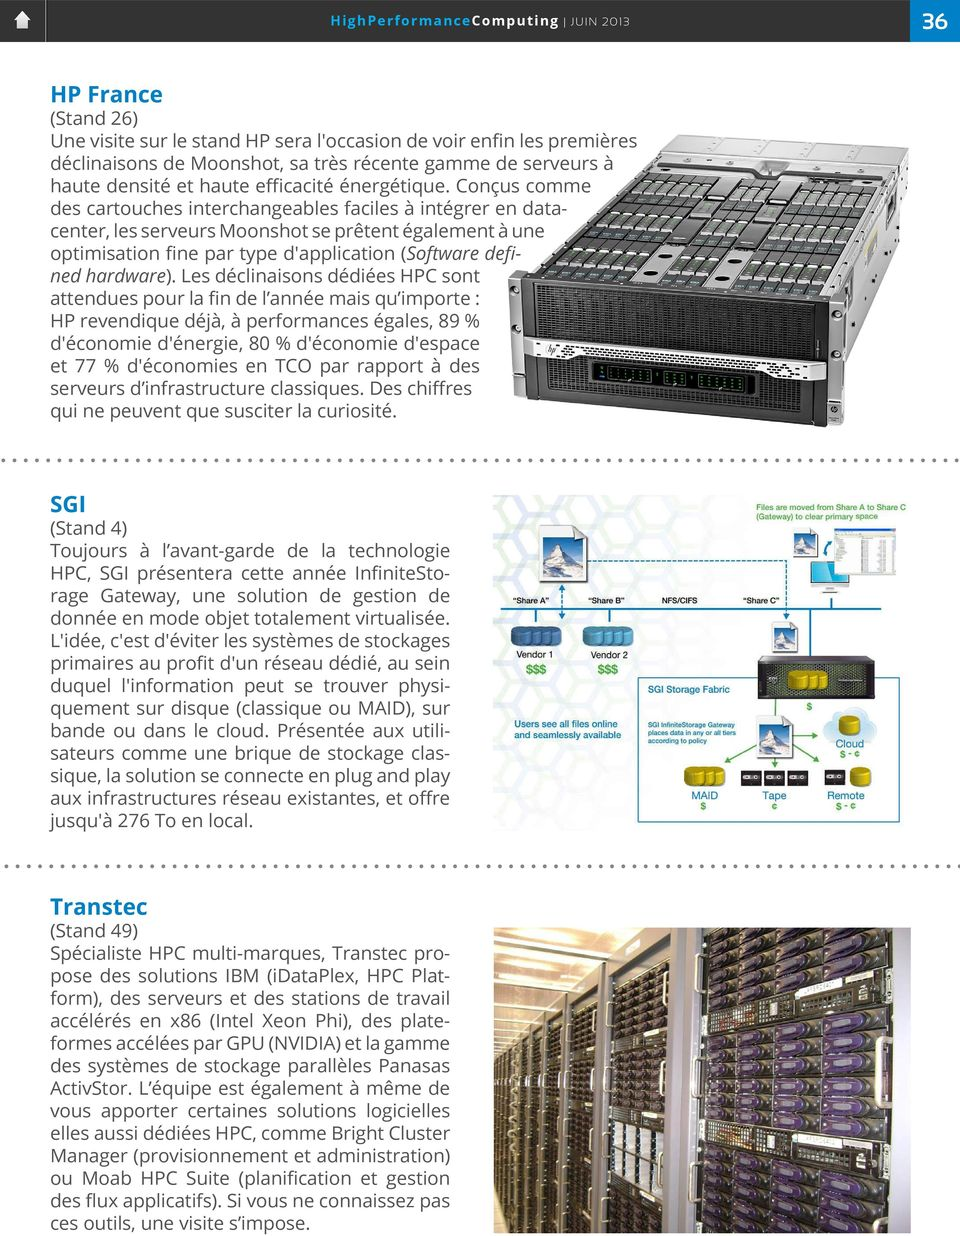 Conçus comme des cartouches interchangeables faciles à intégrer en datacenter, les serveurs Moonshot se prêtent également à une optimisation fine par type d'application (Software defined hardware).